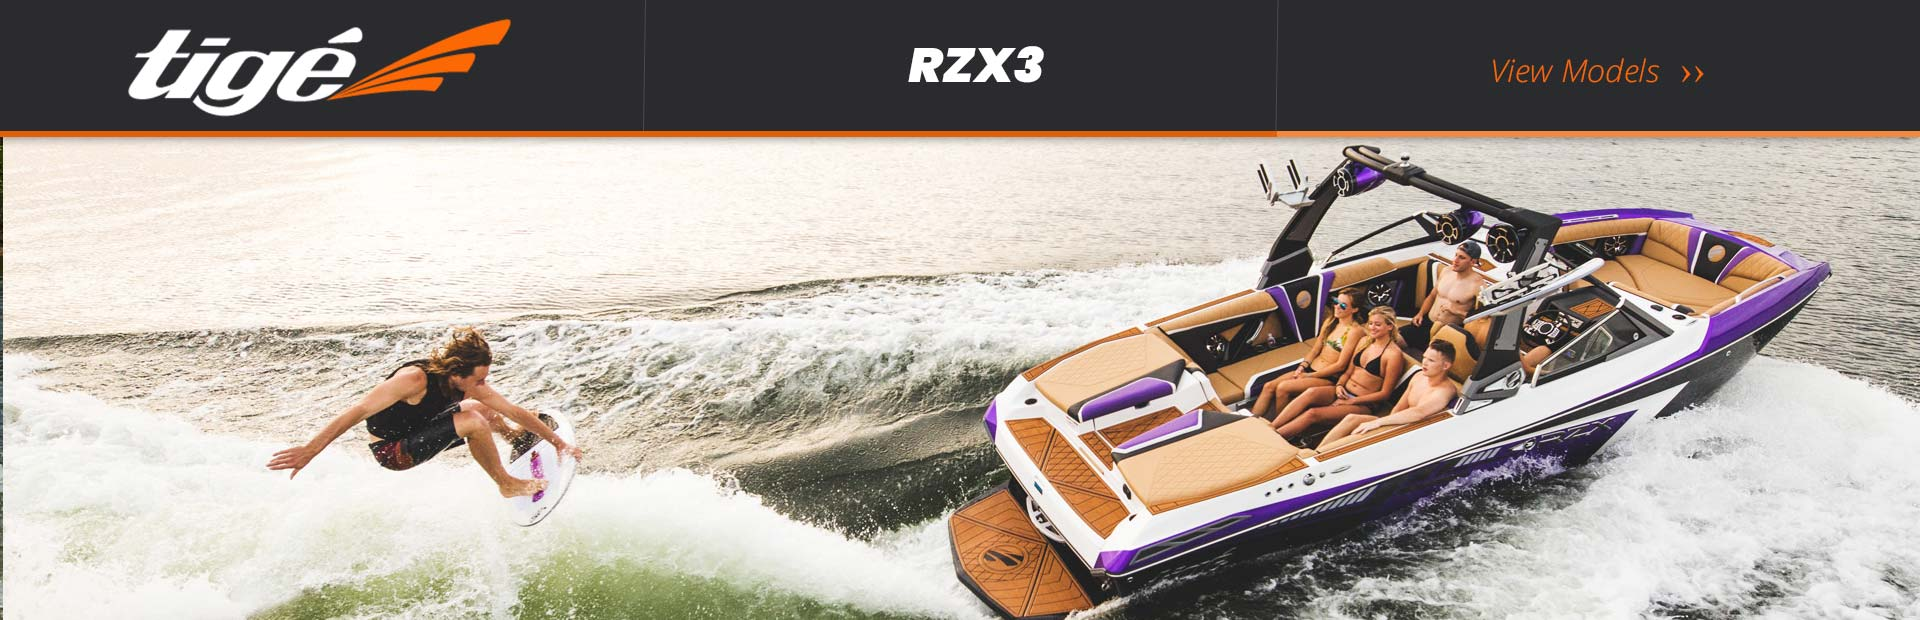 Tige RZX3: Click here to view the models.